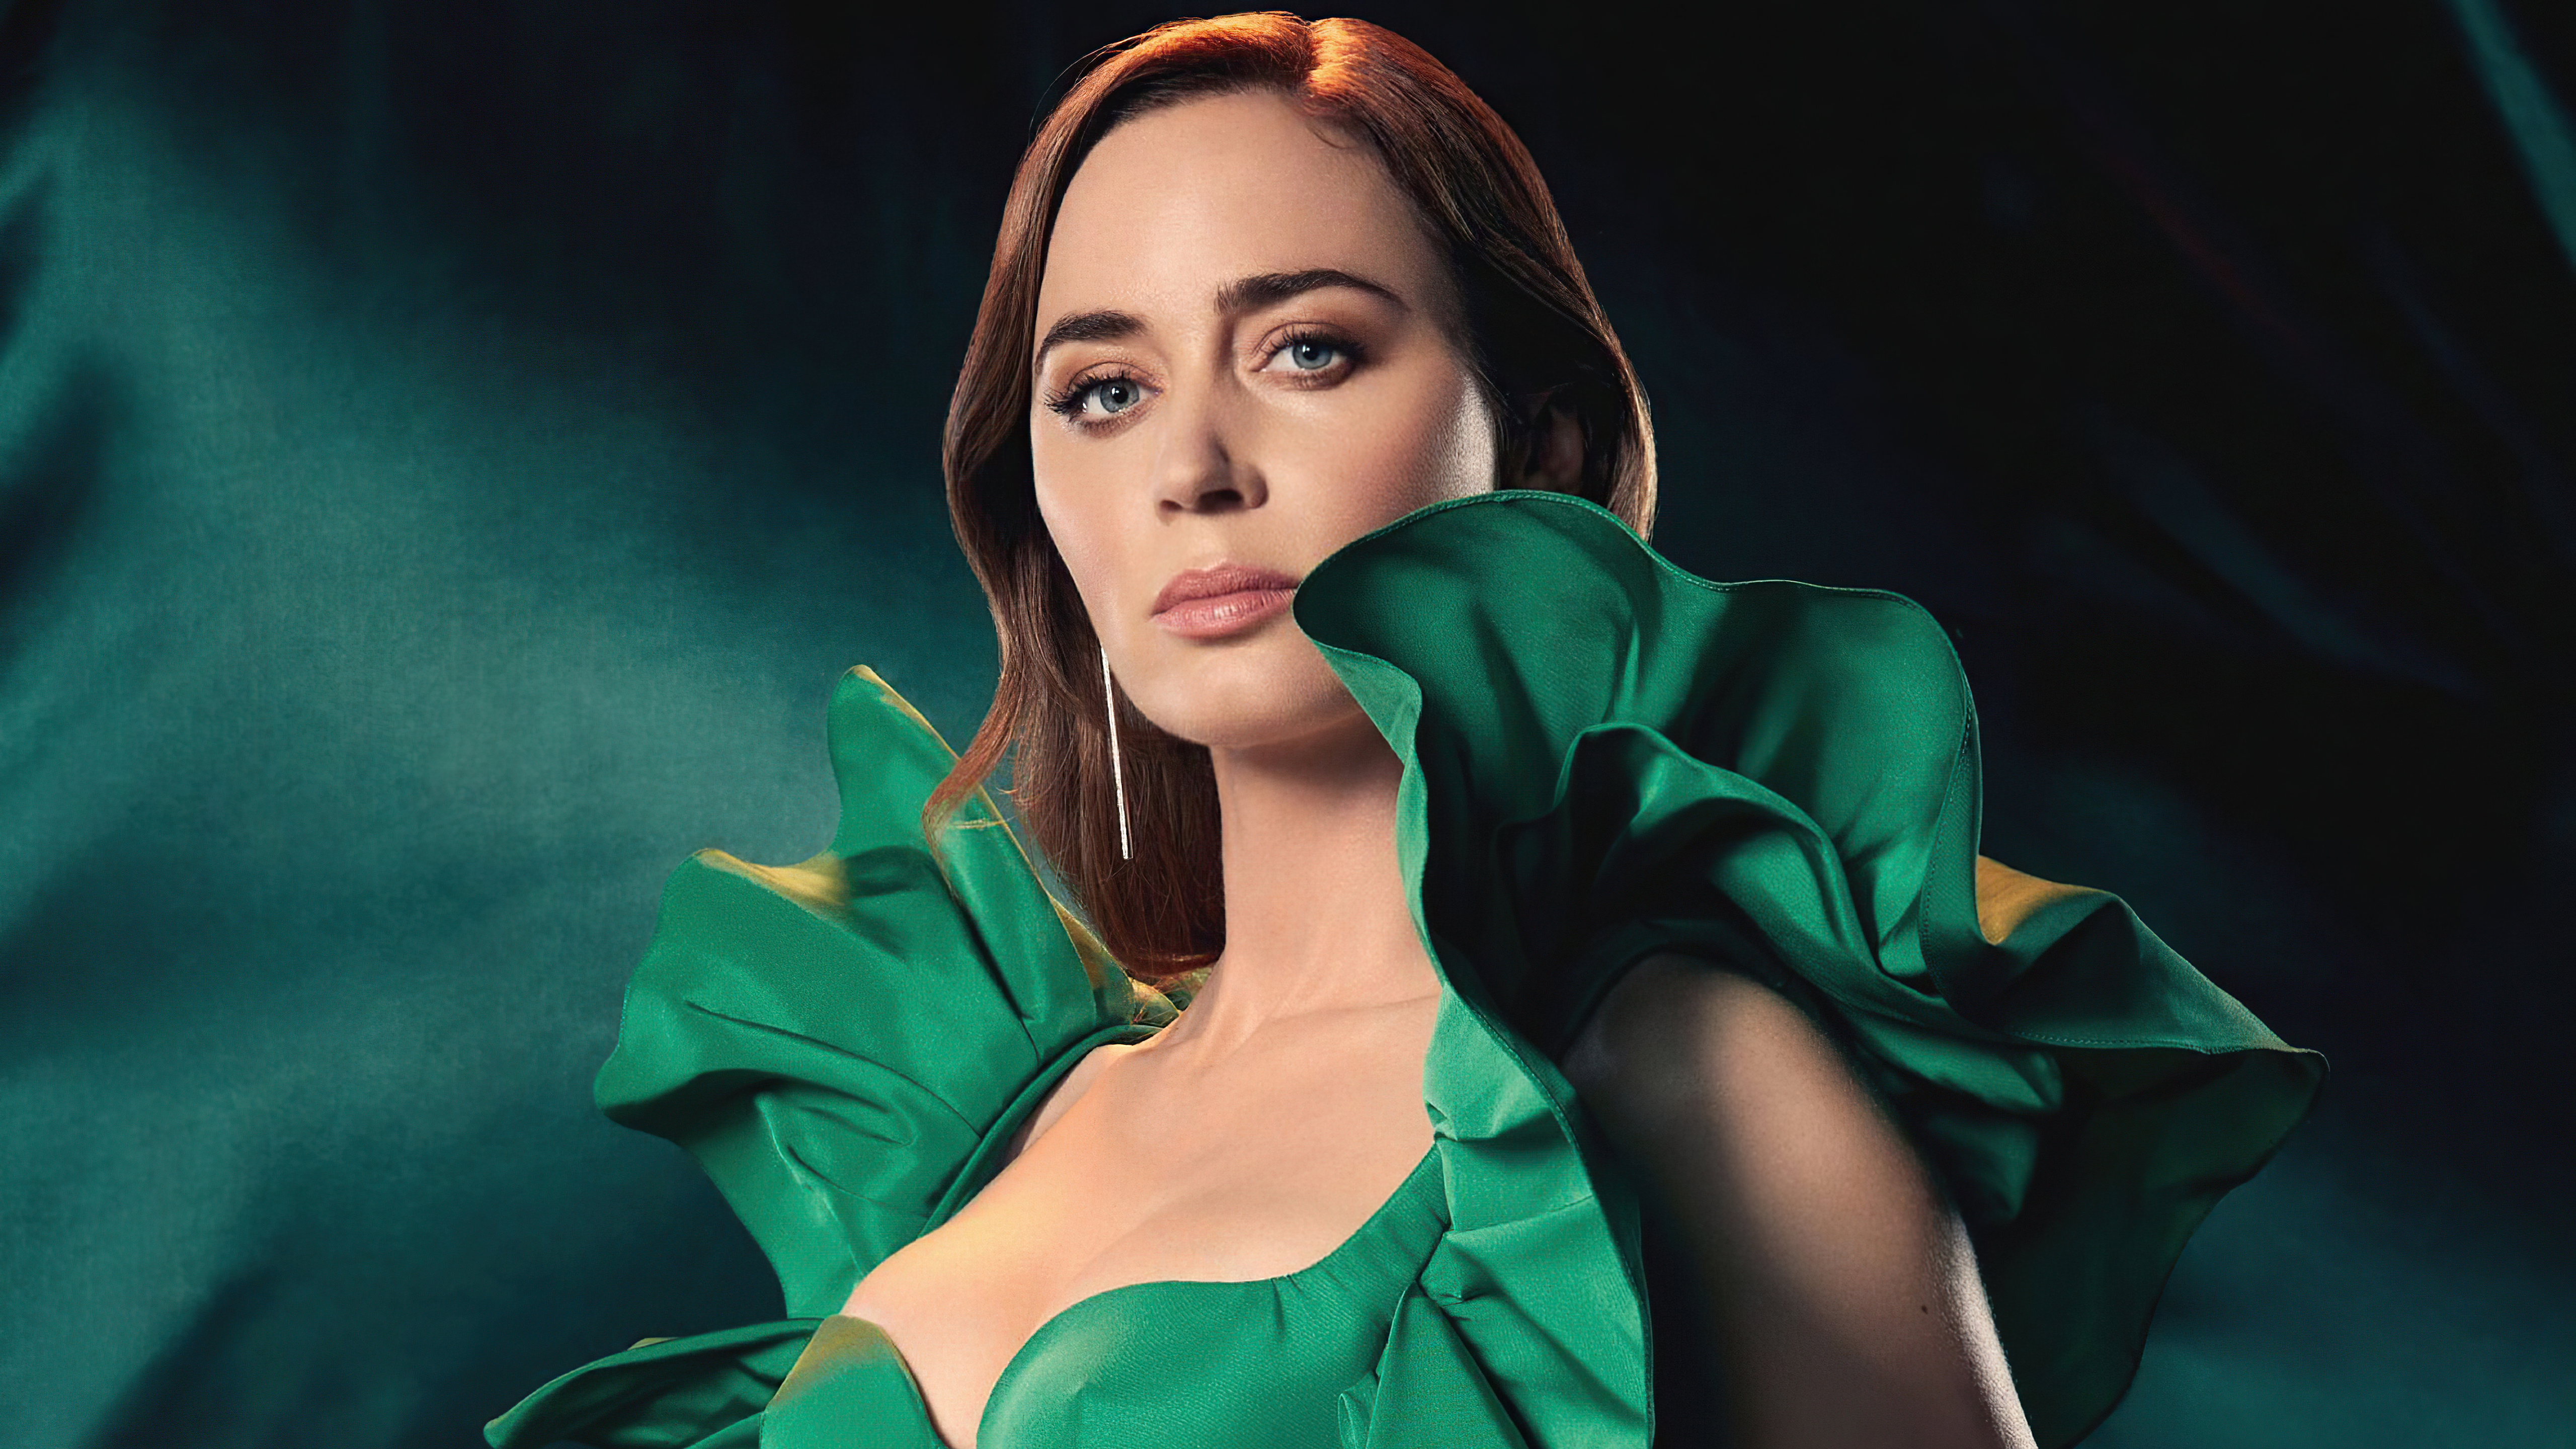 emily blunt the hollywood reporter 4k 1634183699 - Emily Blunt The Hollywood Reporter 4k - Emily Blunt The Hollywood Reporter 4k wallpapersEmily Blunt The Hollywood Reporter wallpapers